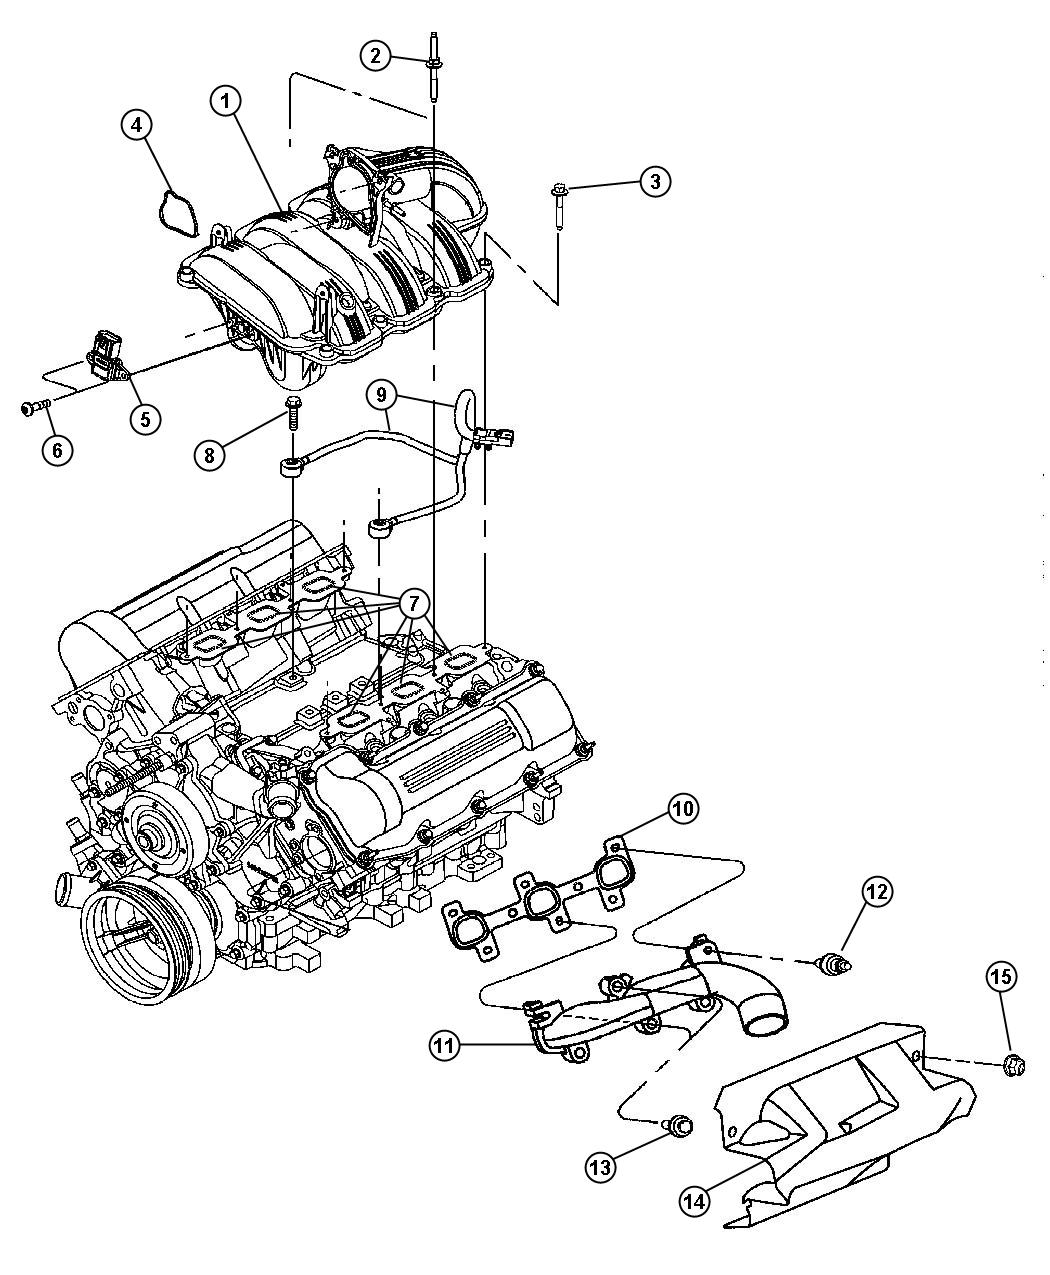 2000 dodge dakota engine diagram